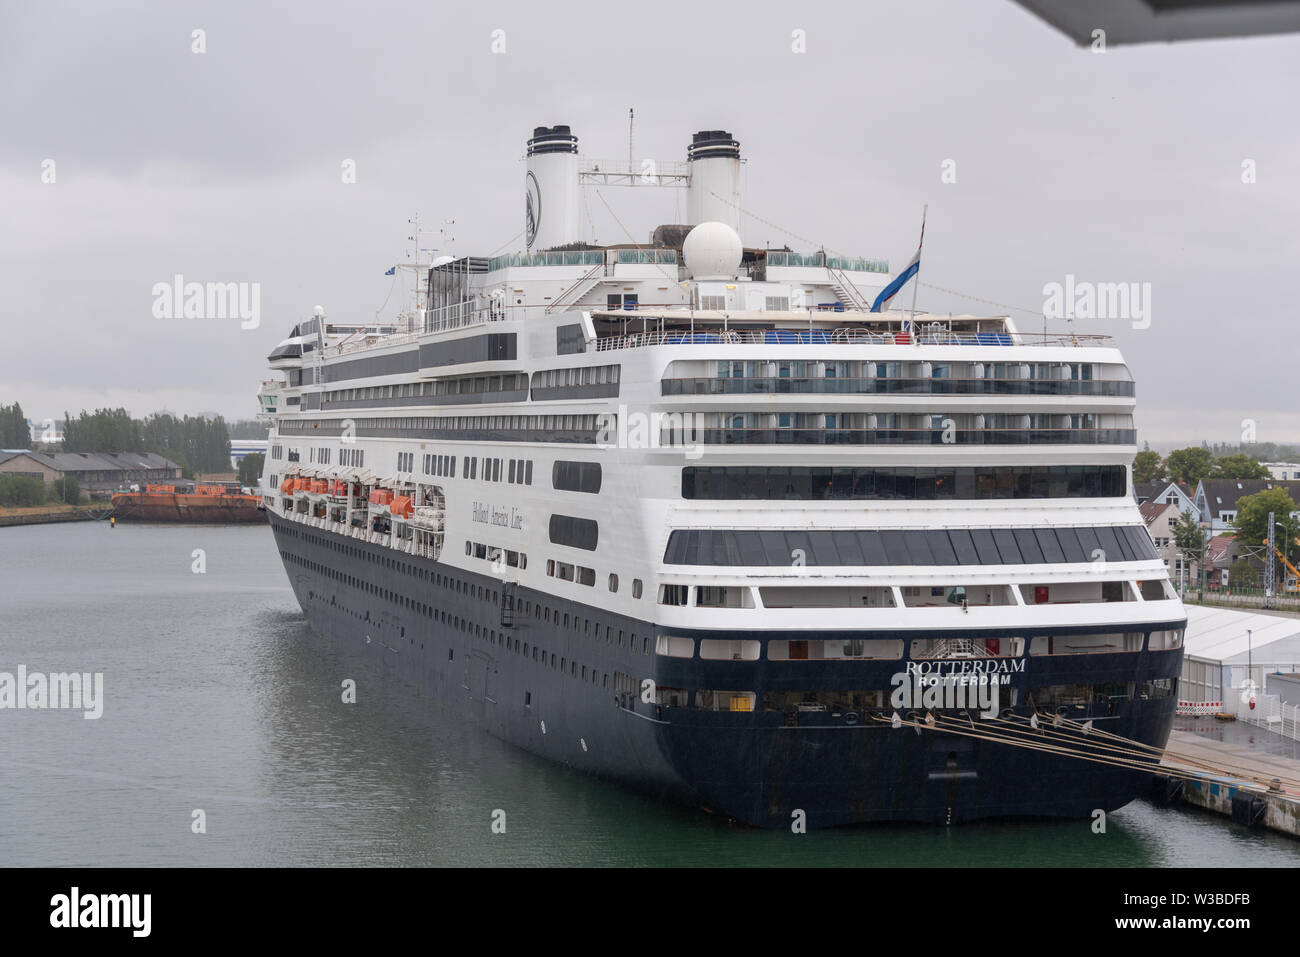 Rostock, Germany - July 7, 2019: View of the cruise liner Rotterdam in the port of Rostock, Germany. - Stock Image